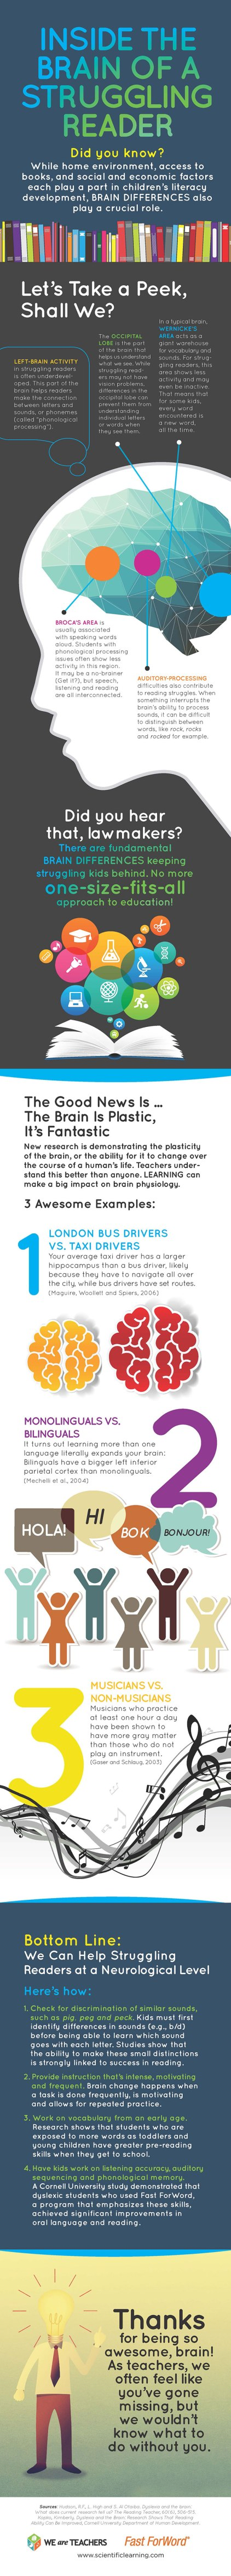 Inside-the-brain-of-a-reader-infographic